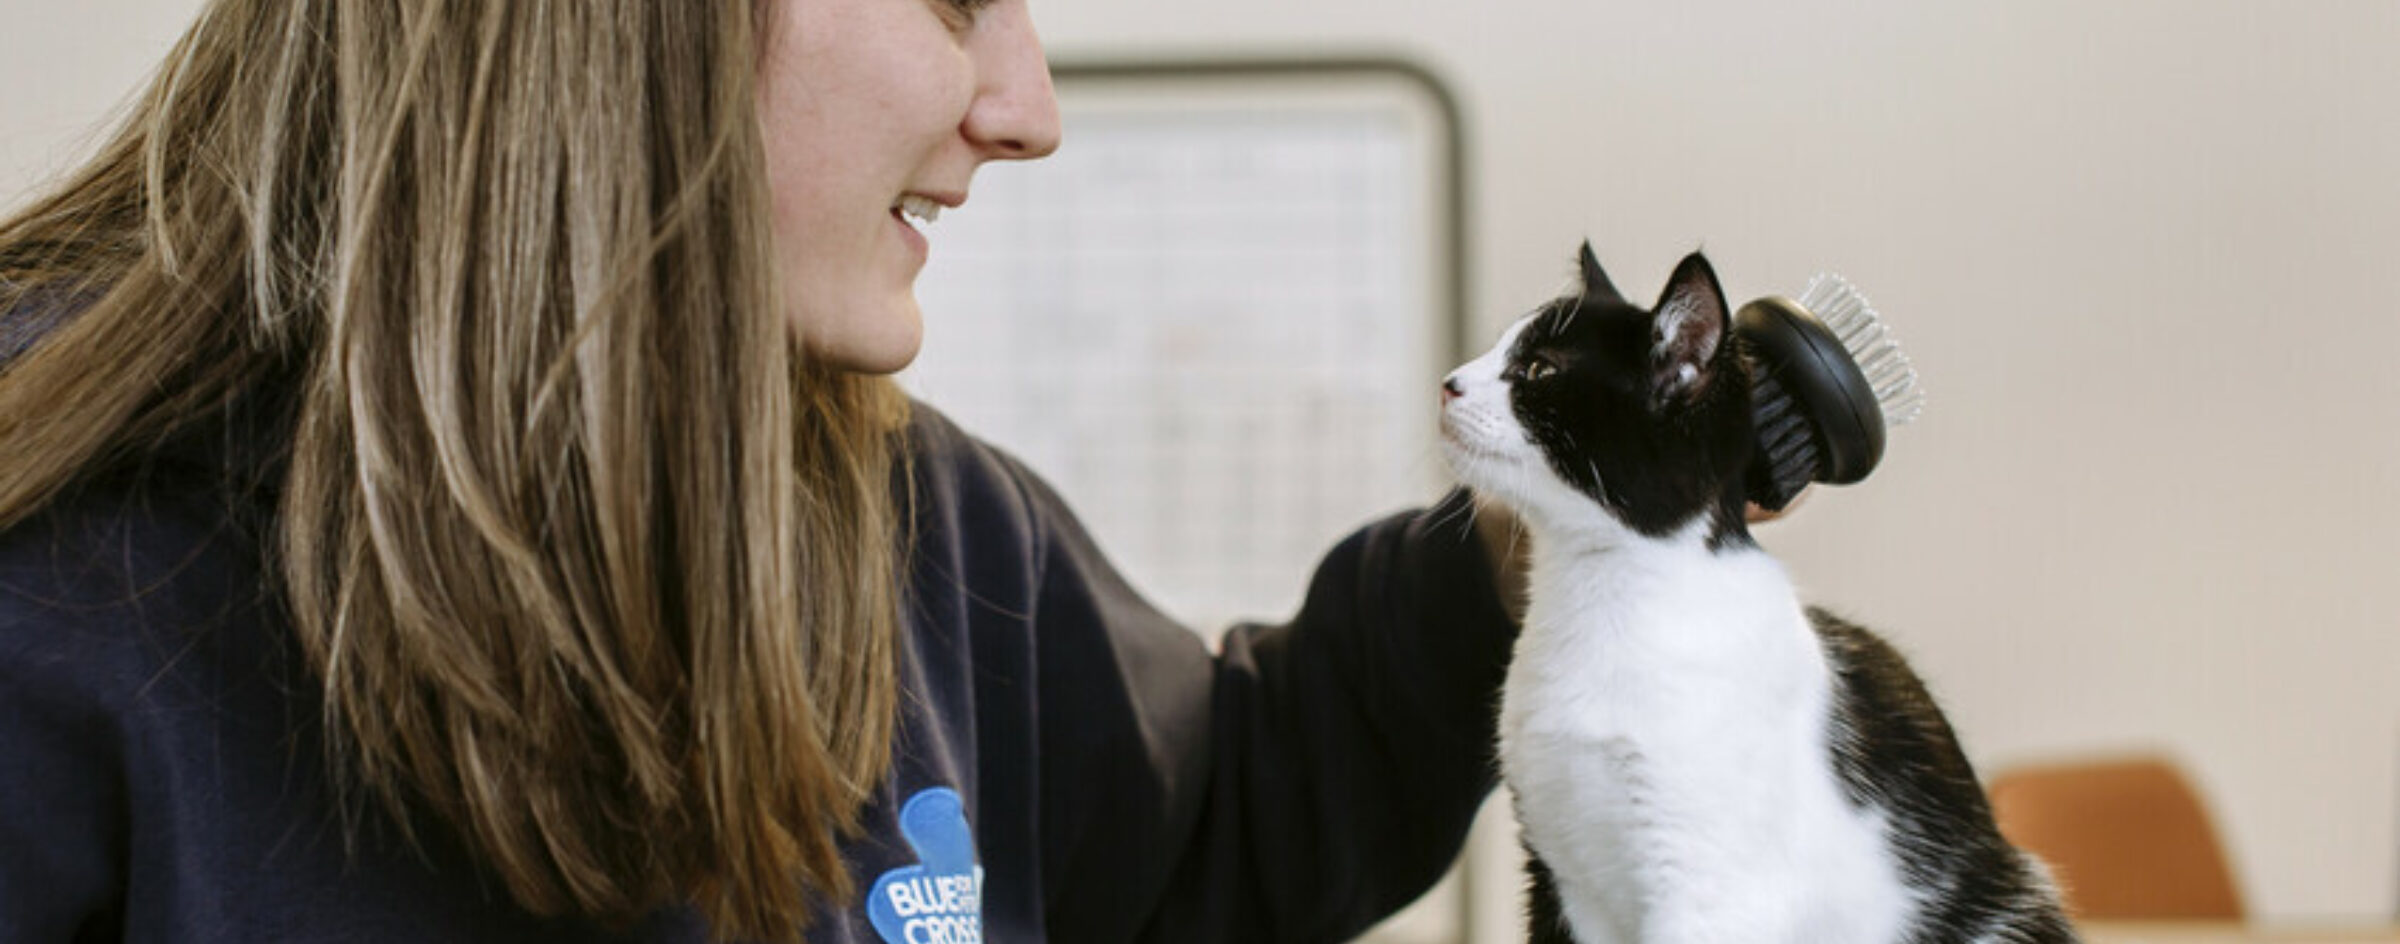 Black and white cat being stroke by a woman